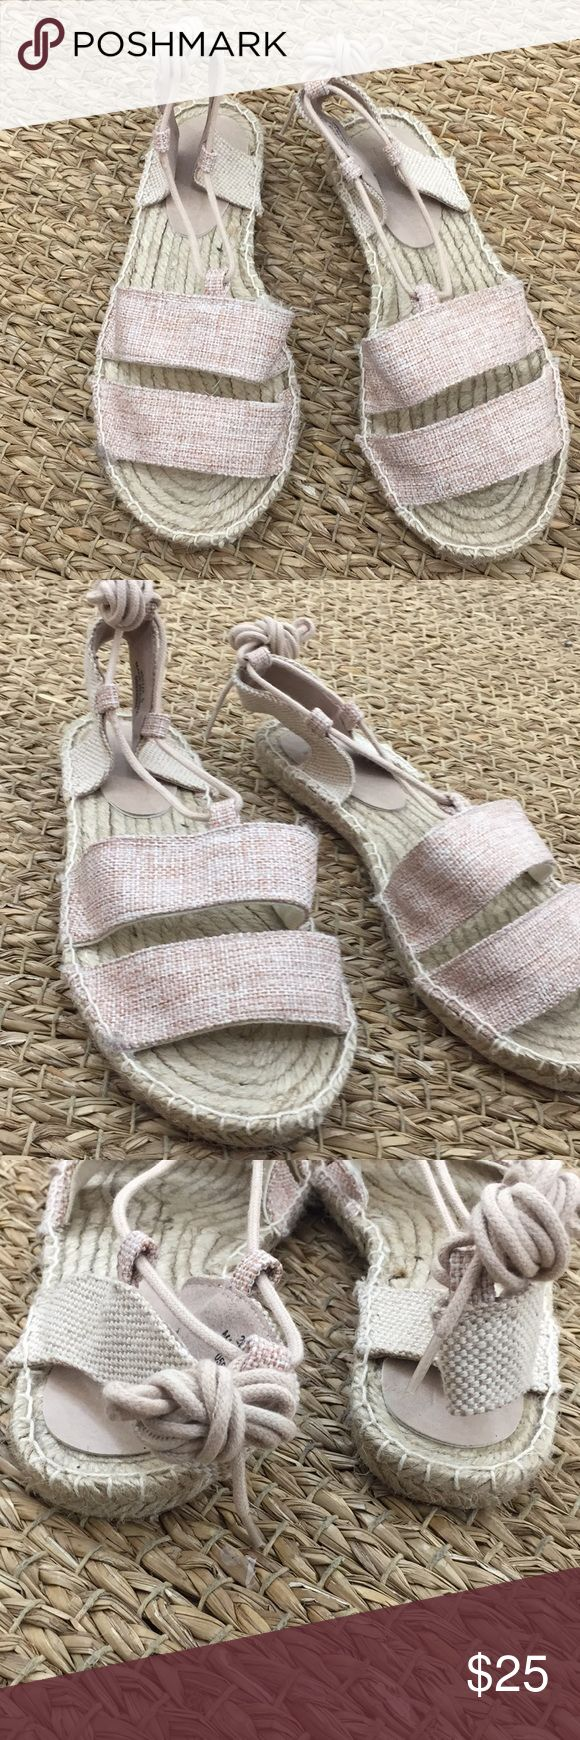 🐣ASOS Janica Tie up Espadrilles Beautiful ASOS Janica tie up espadrilles. Brand new!  ✅Offers Considered! 🔔 Please ask questions before you buy 💯Bundle and save 20% on 4 items or more. 💌All sales are final! 🚫No trades or holds!  👇🏽Please use the blue offer button at the button of page. ASOS Shoes Espadrilles